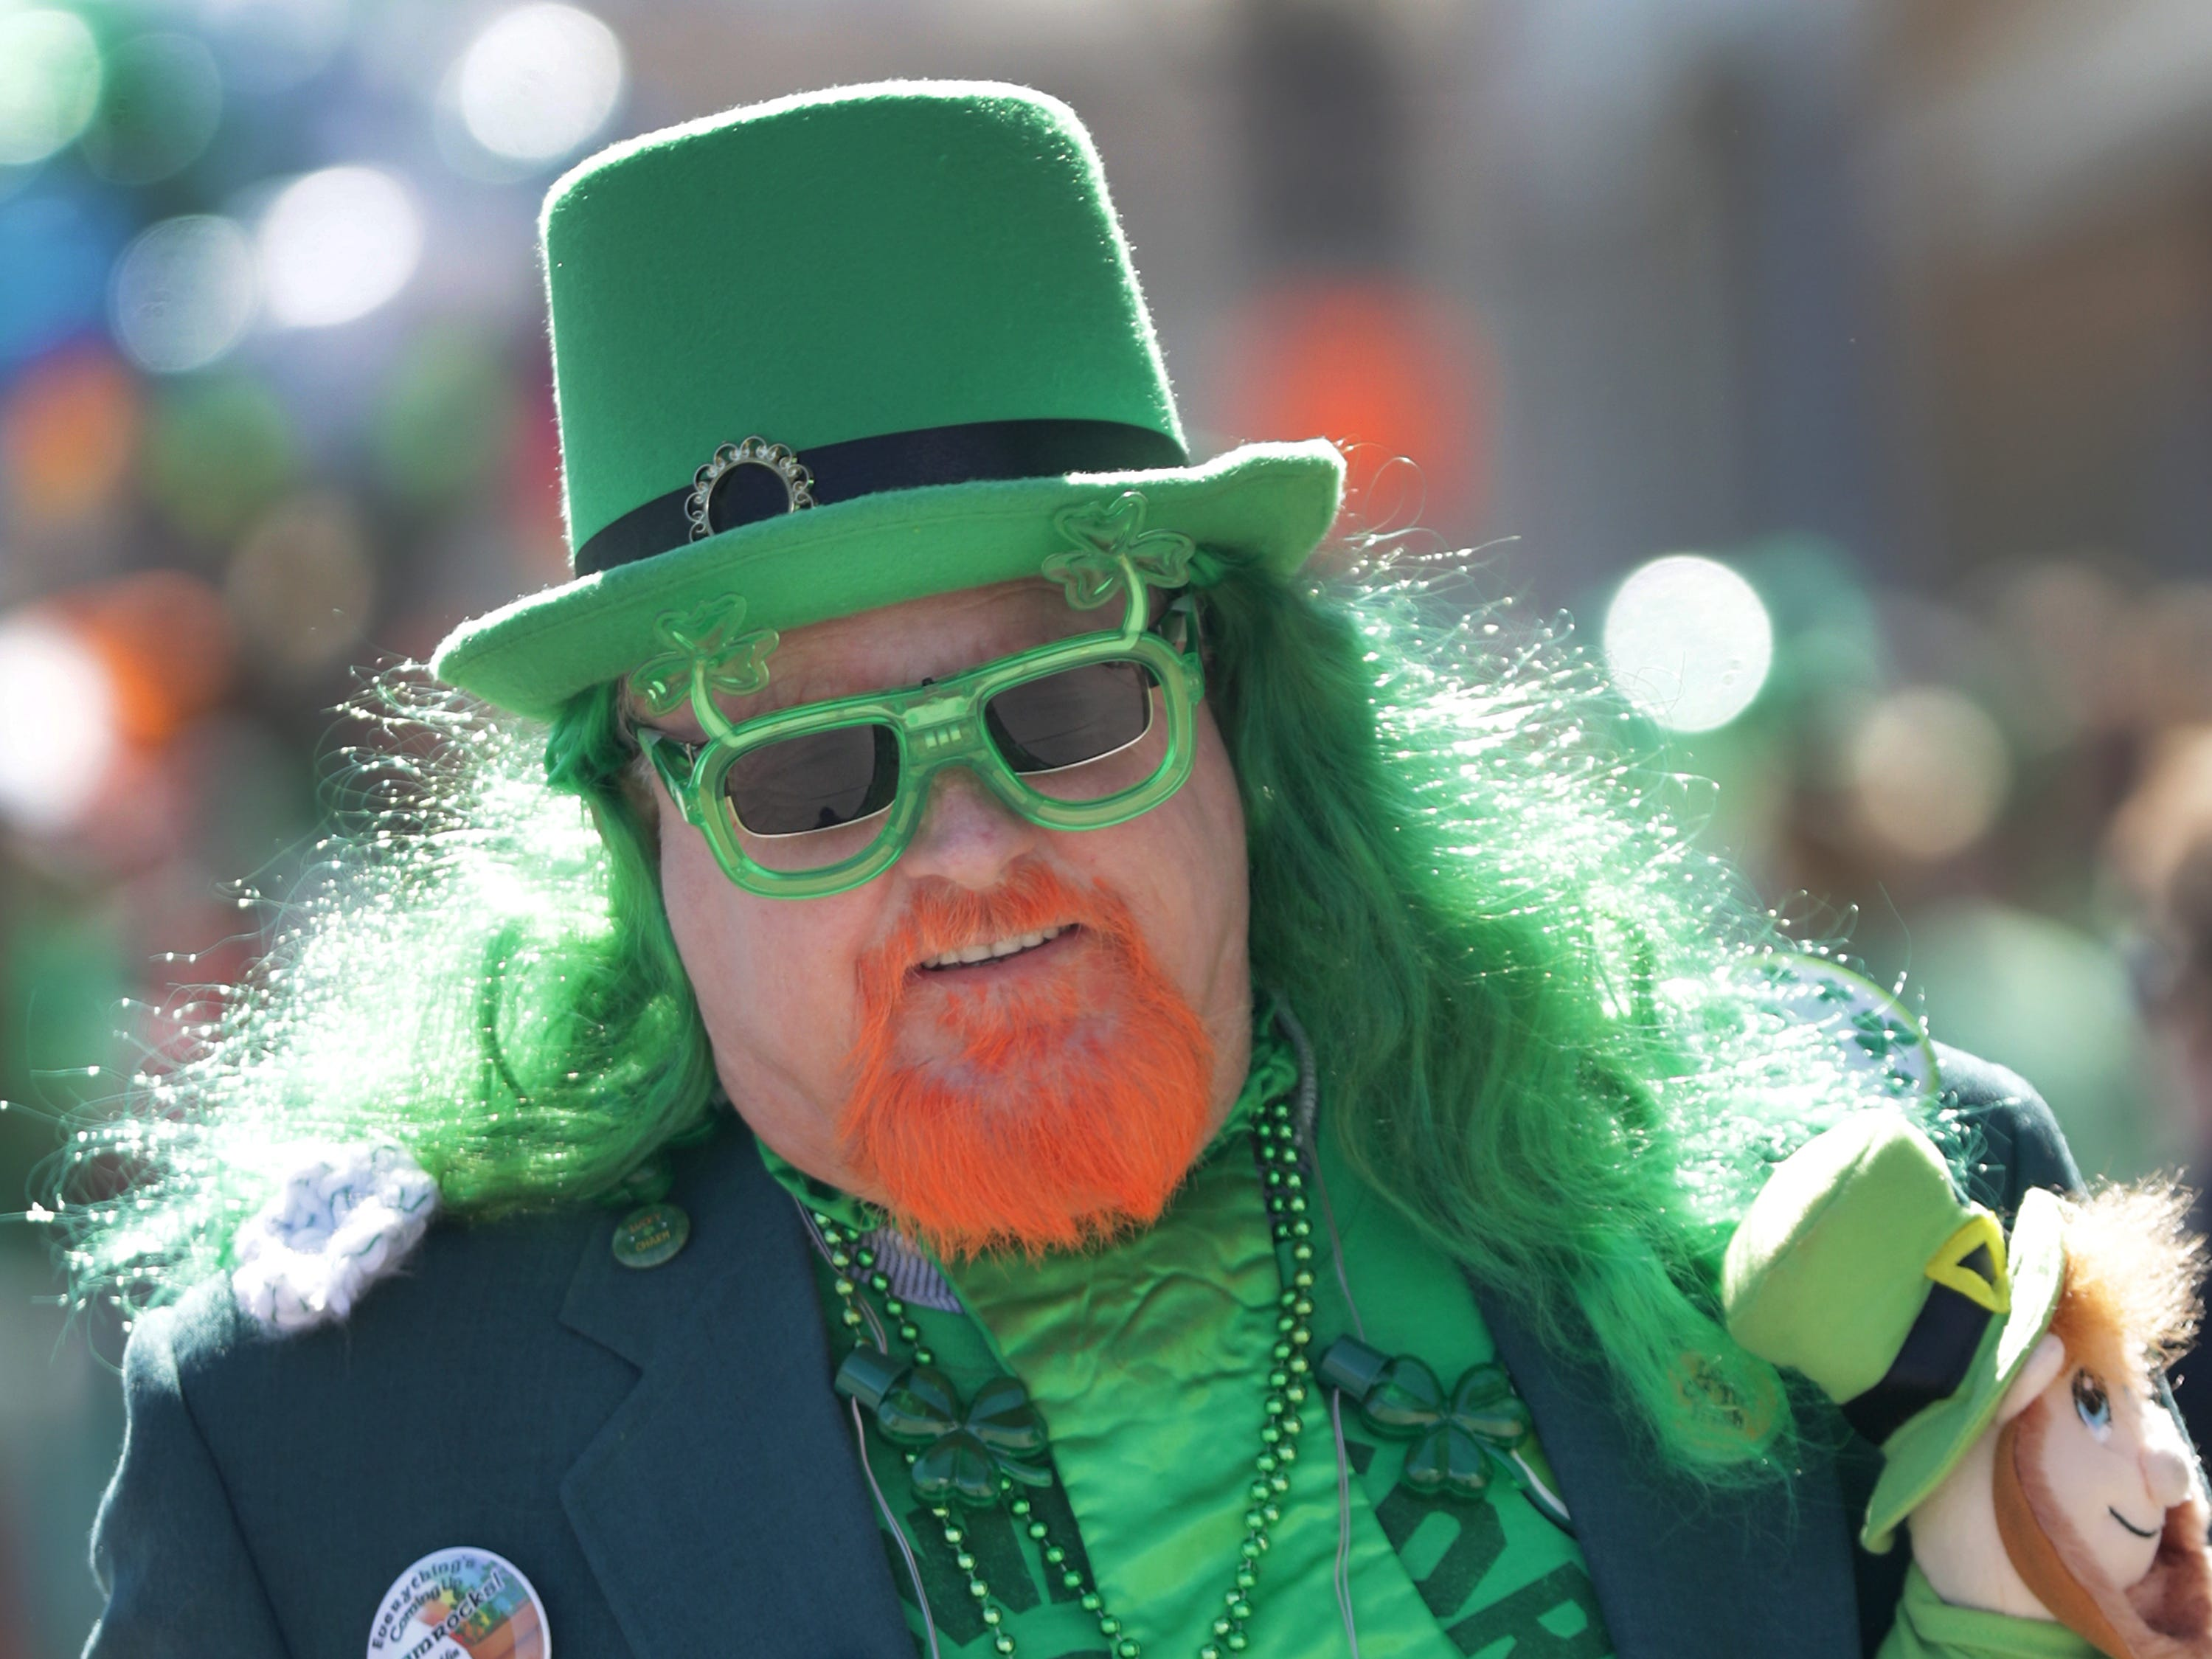 Mert Olson during the New Dublin St. Patrick's Day Grand Parade on Saturday, March 23, 2019, in New London, Wis.Wm. Glasheen/USA TODAY NETWORK-Wisconsin.